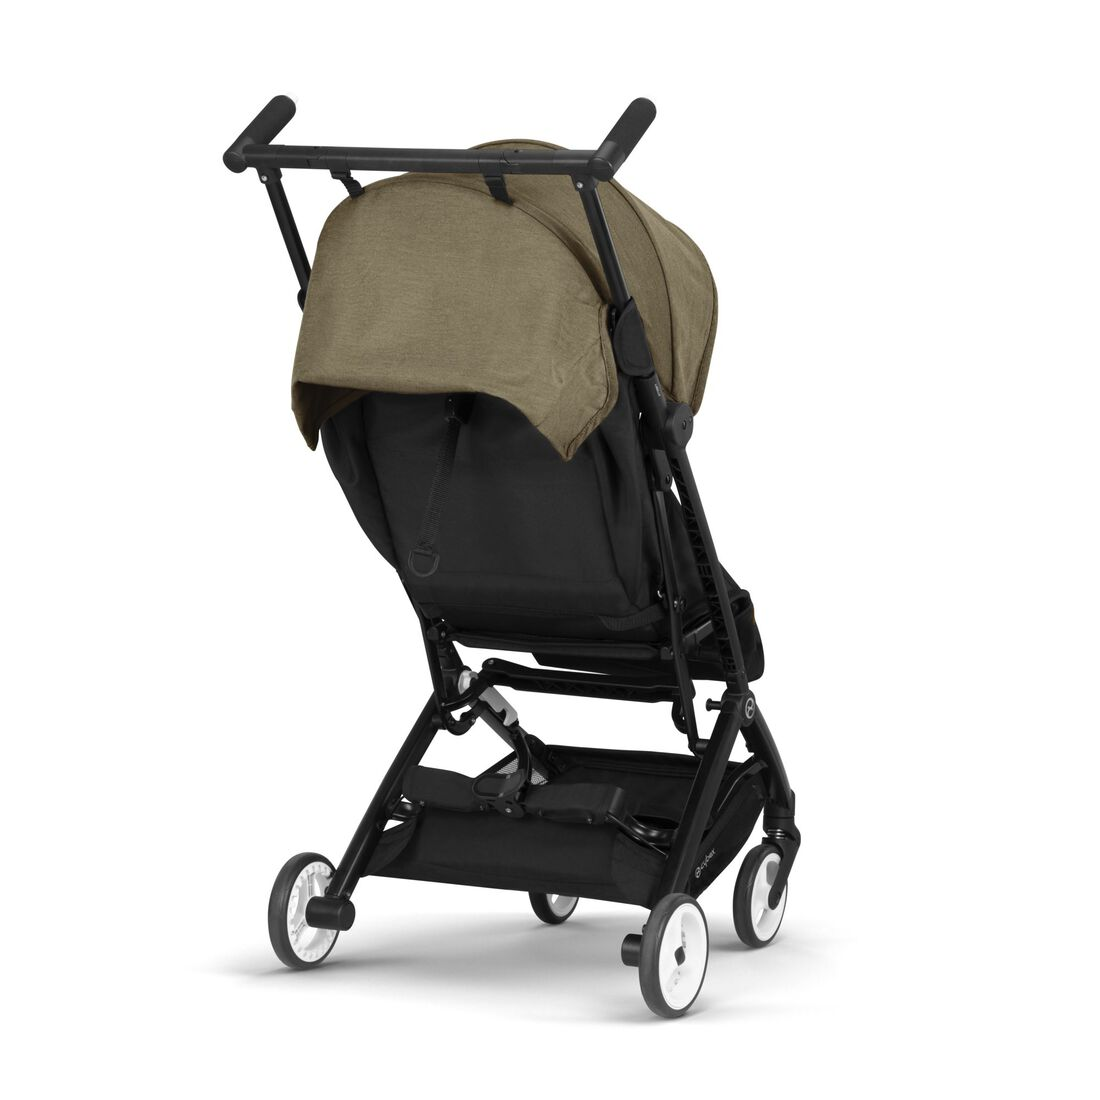 CYBEX Libelle - Classic Beige in Classic Beige large image number 5